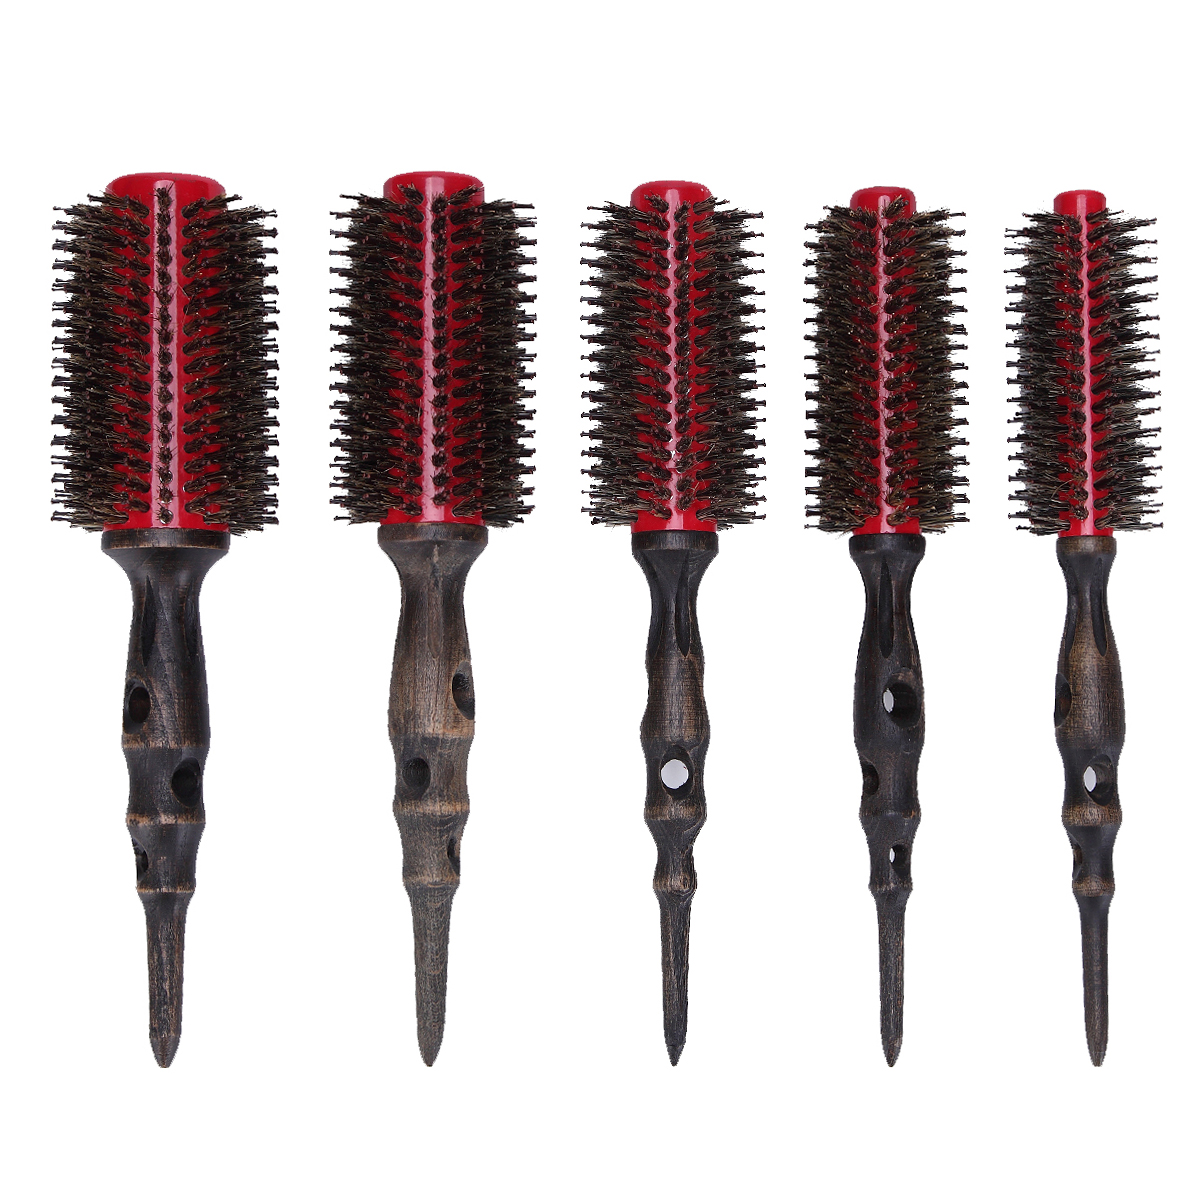 цены  5Pcs/set Professional Hair Round Brushes Retro Style Curler Combs Hairdressing Straight Quiff Roller Salon Styling Barber Tool